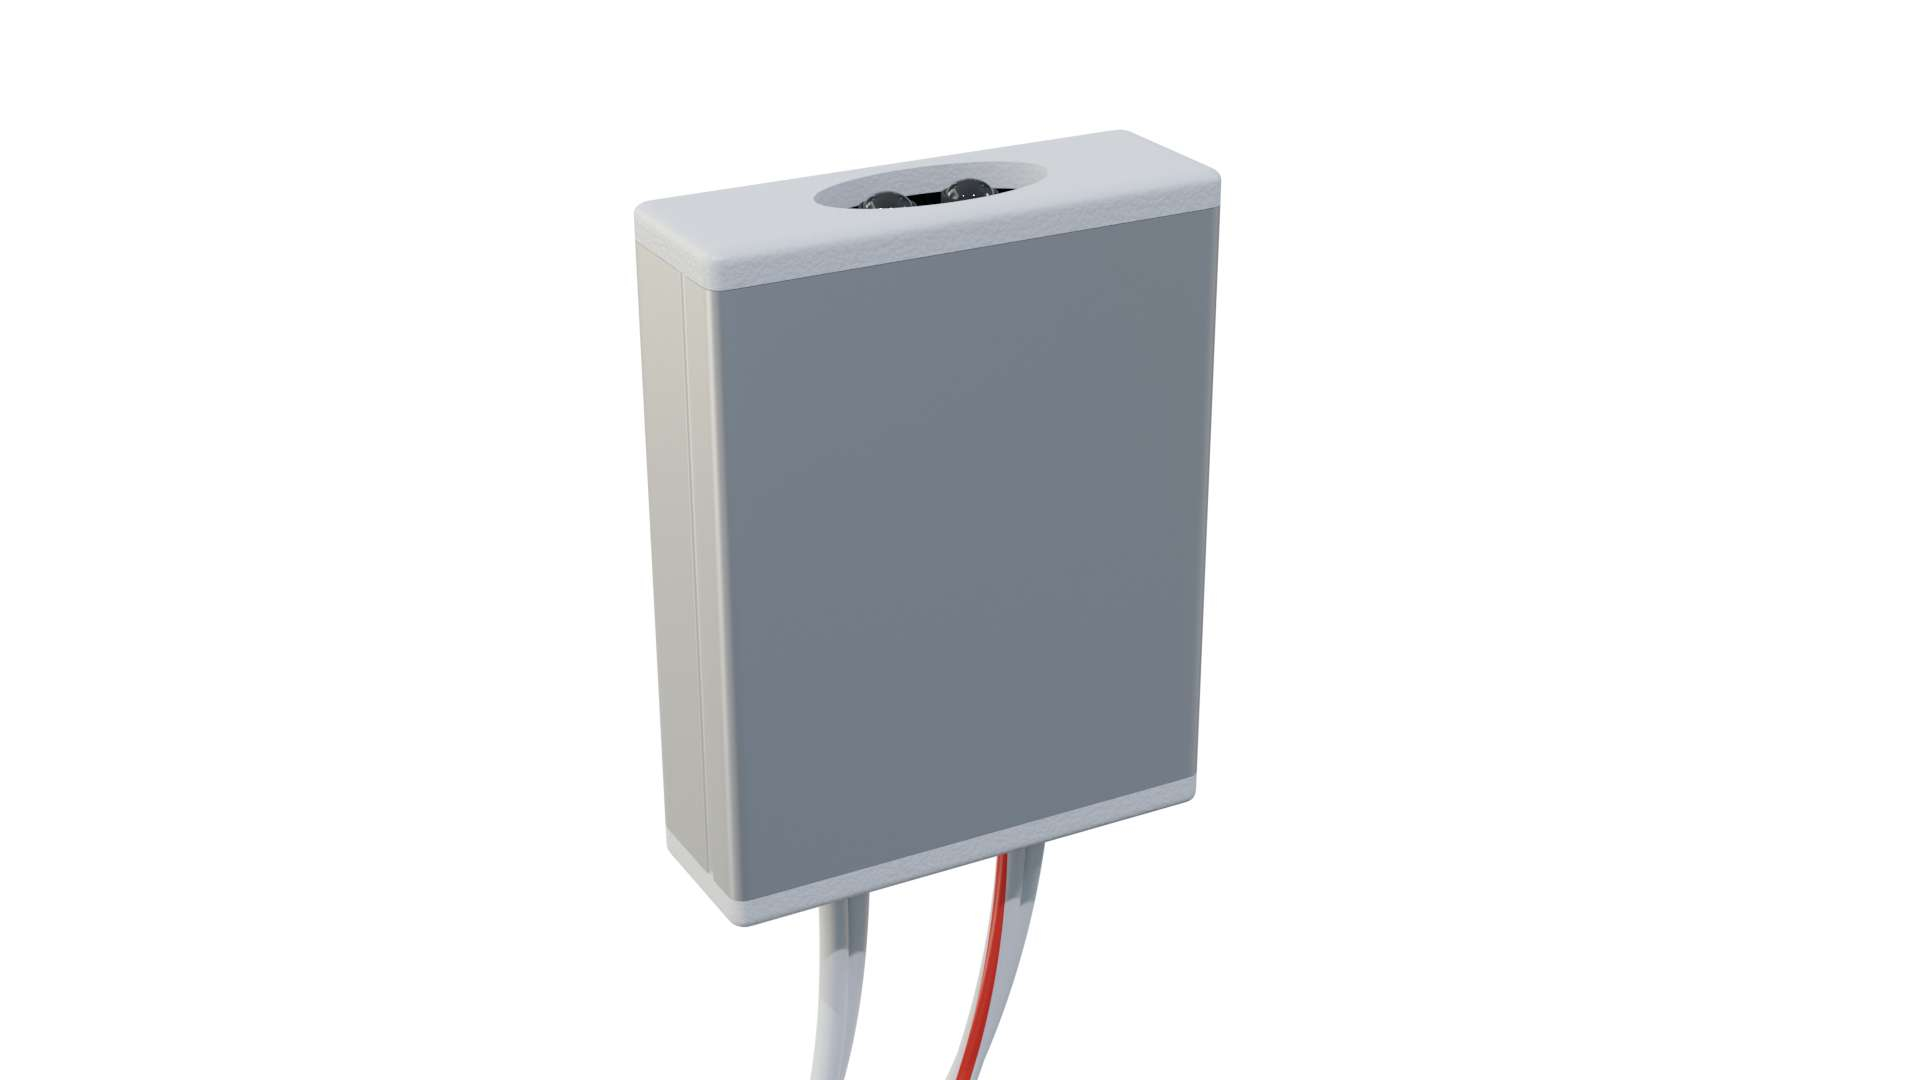 Contactless switch 3in1 DC 60W / 12V 72W / 24V